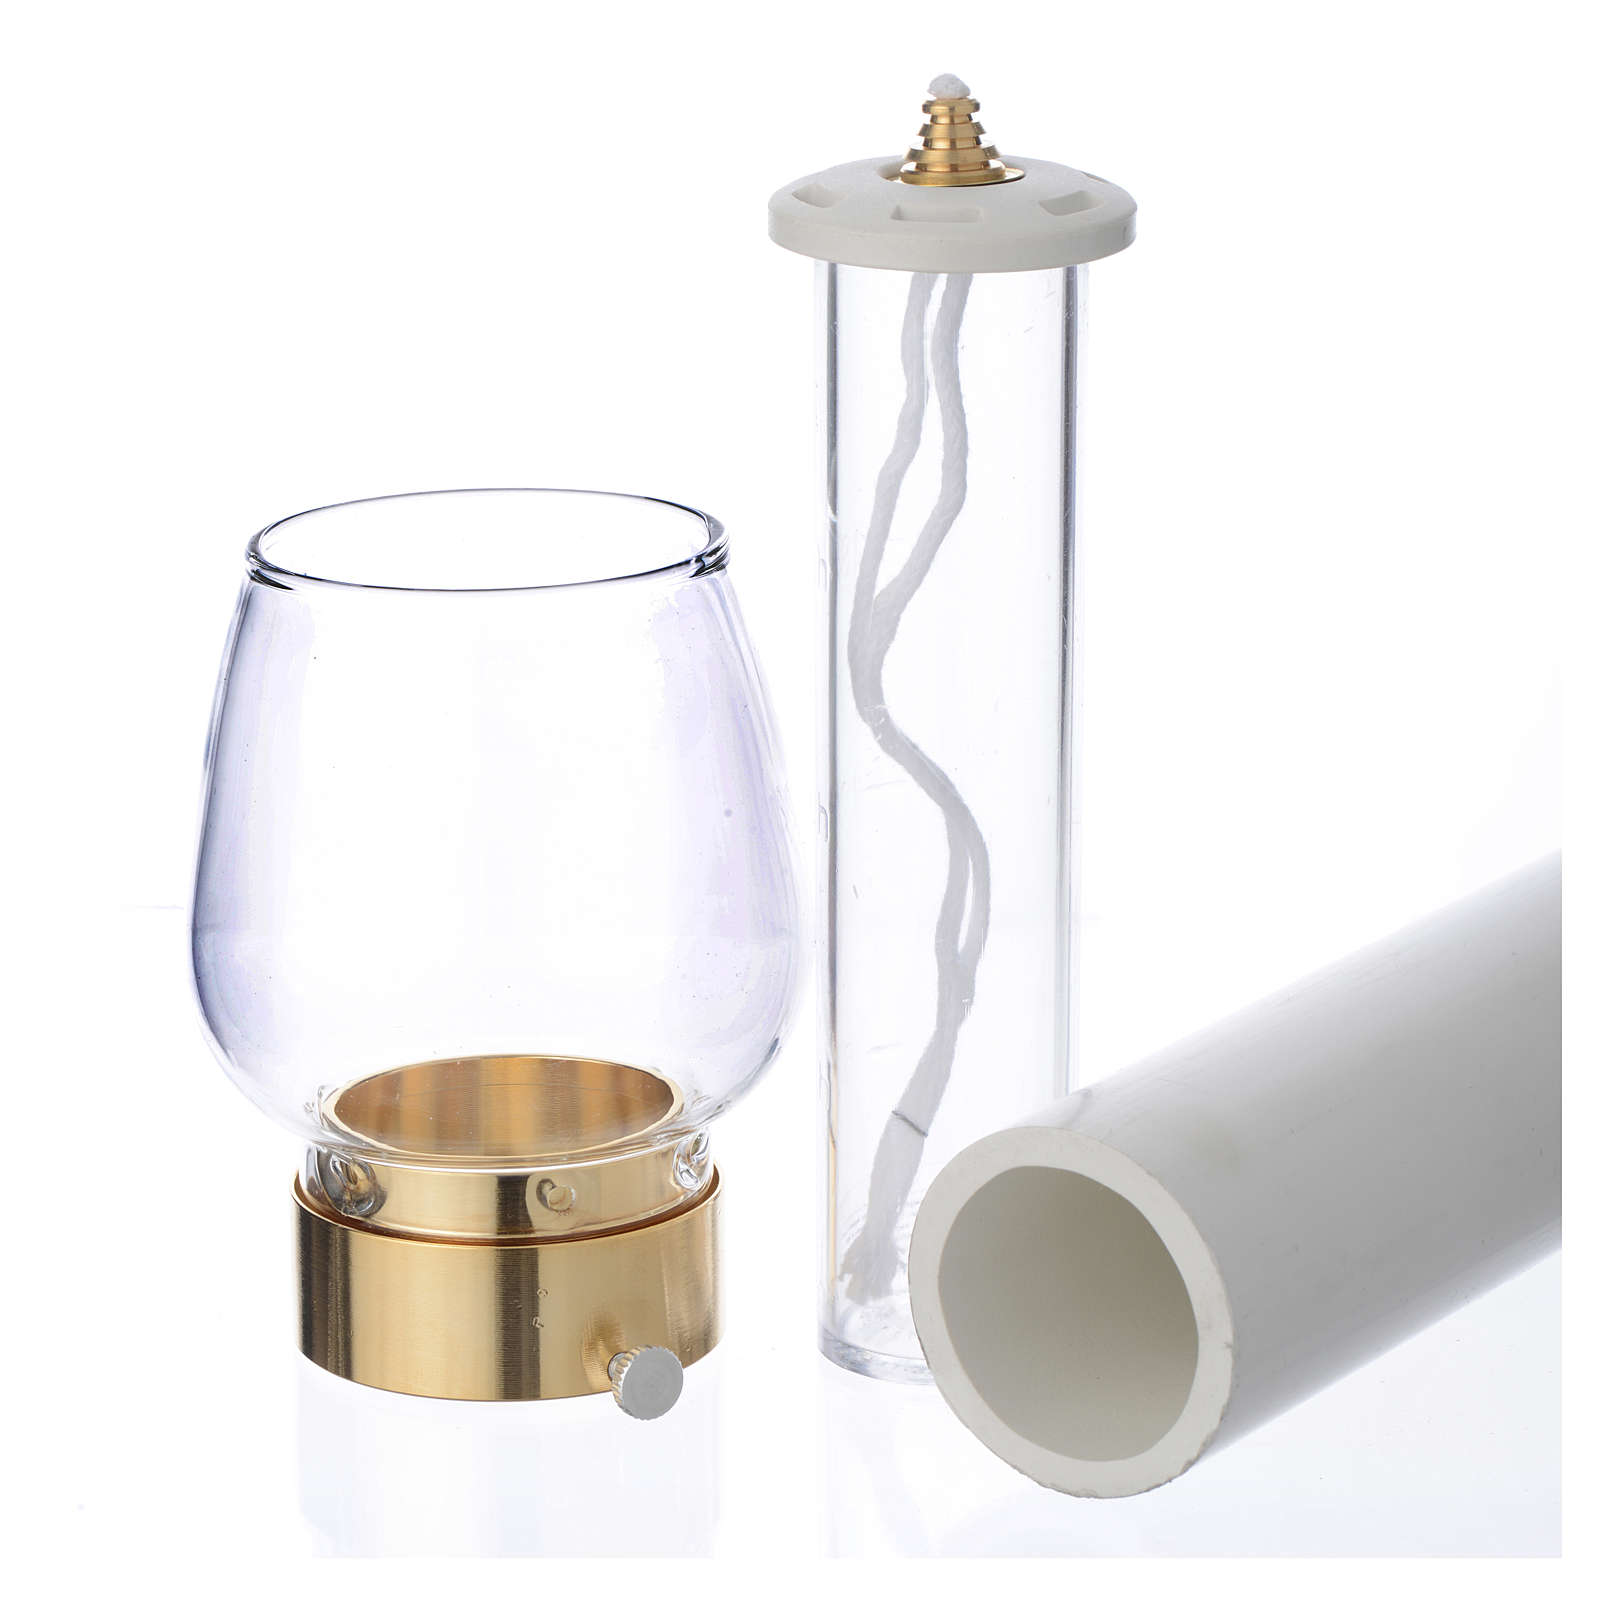 Wind-proof lamp, 70cm tall with golden base, 4cm diameter 3